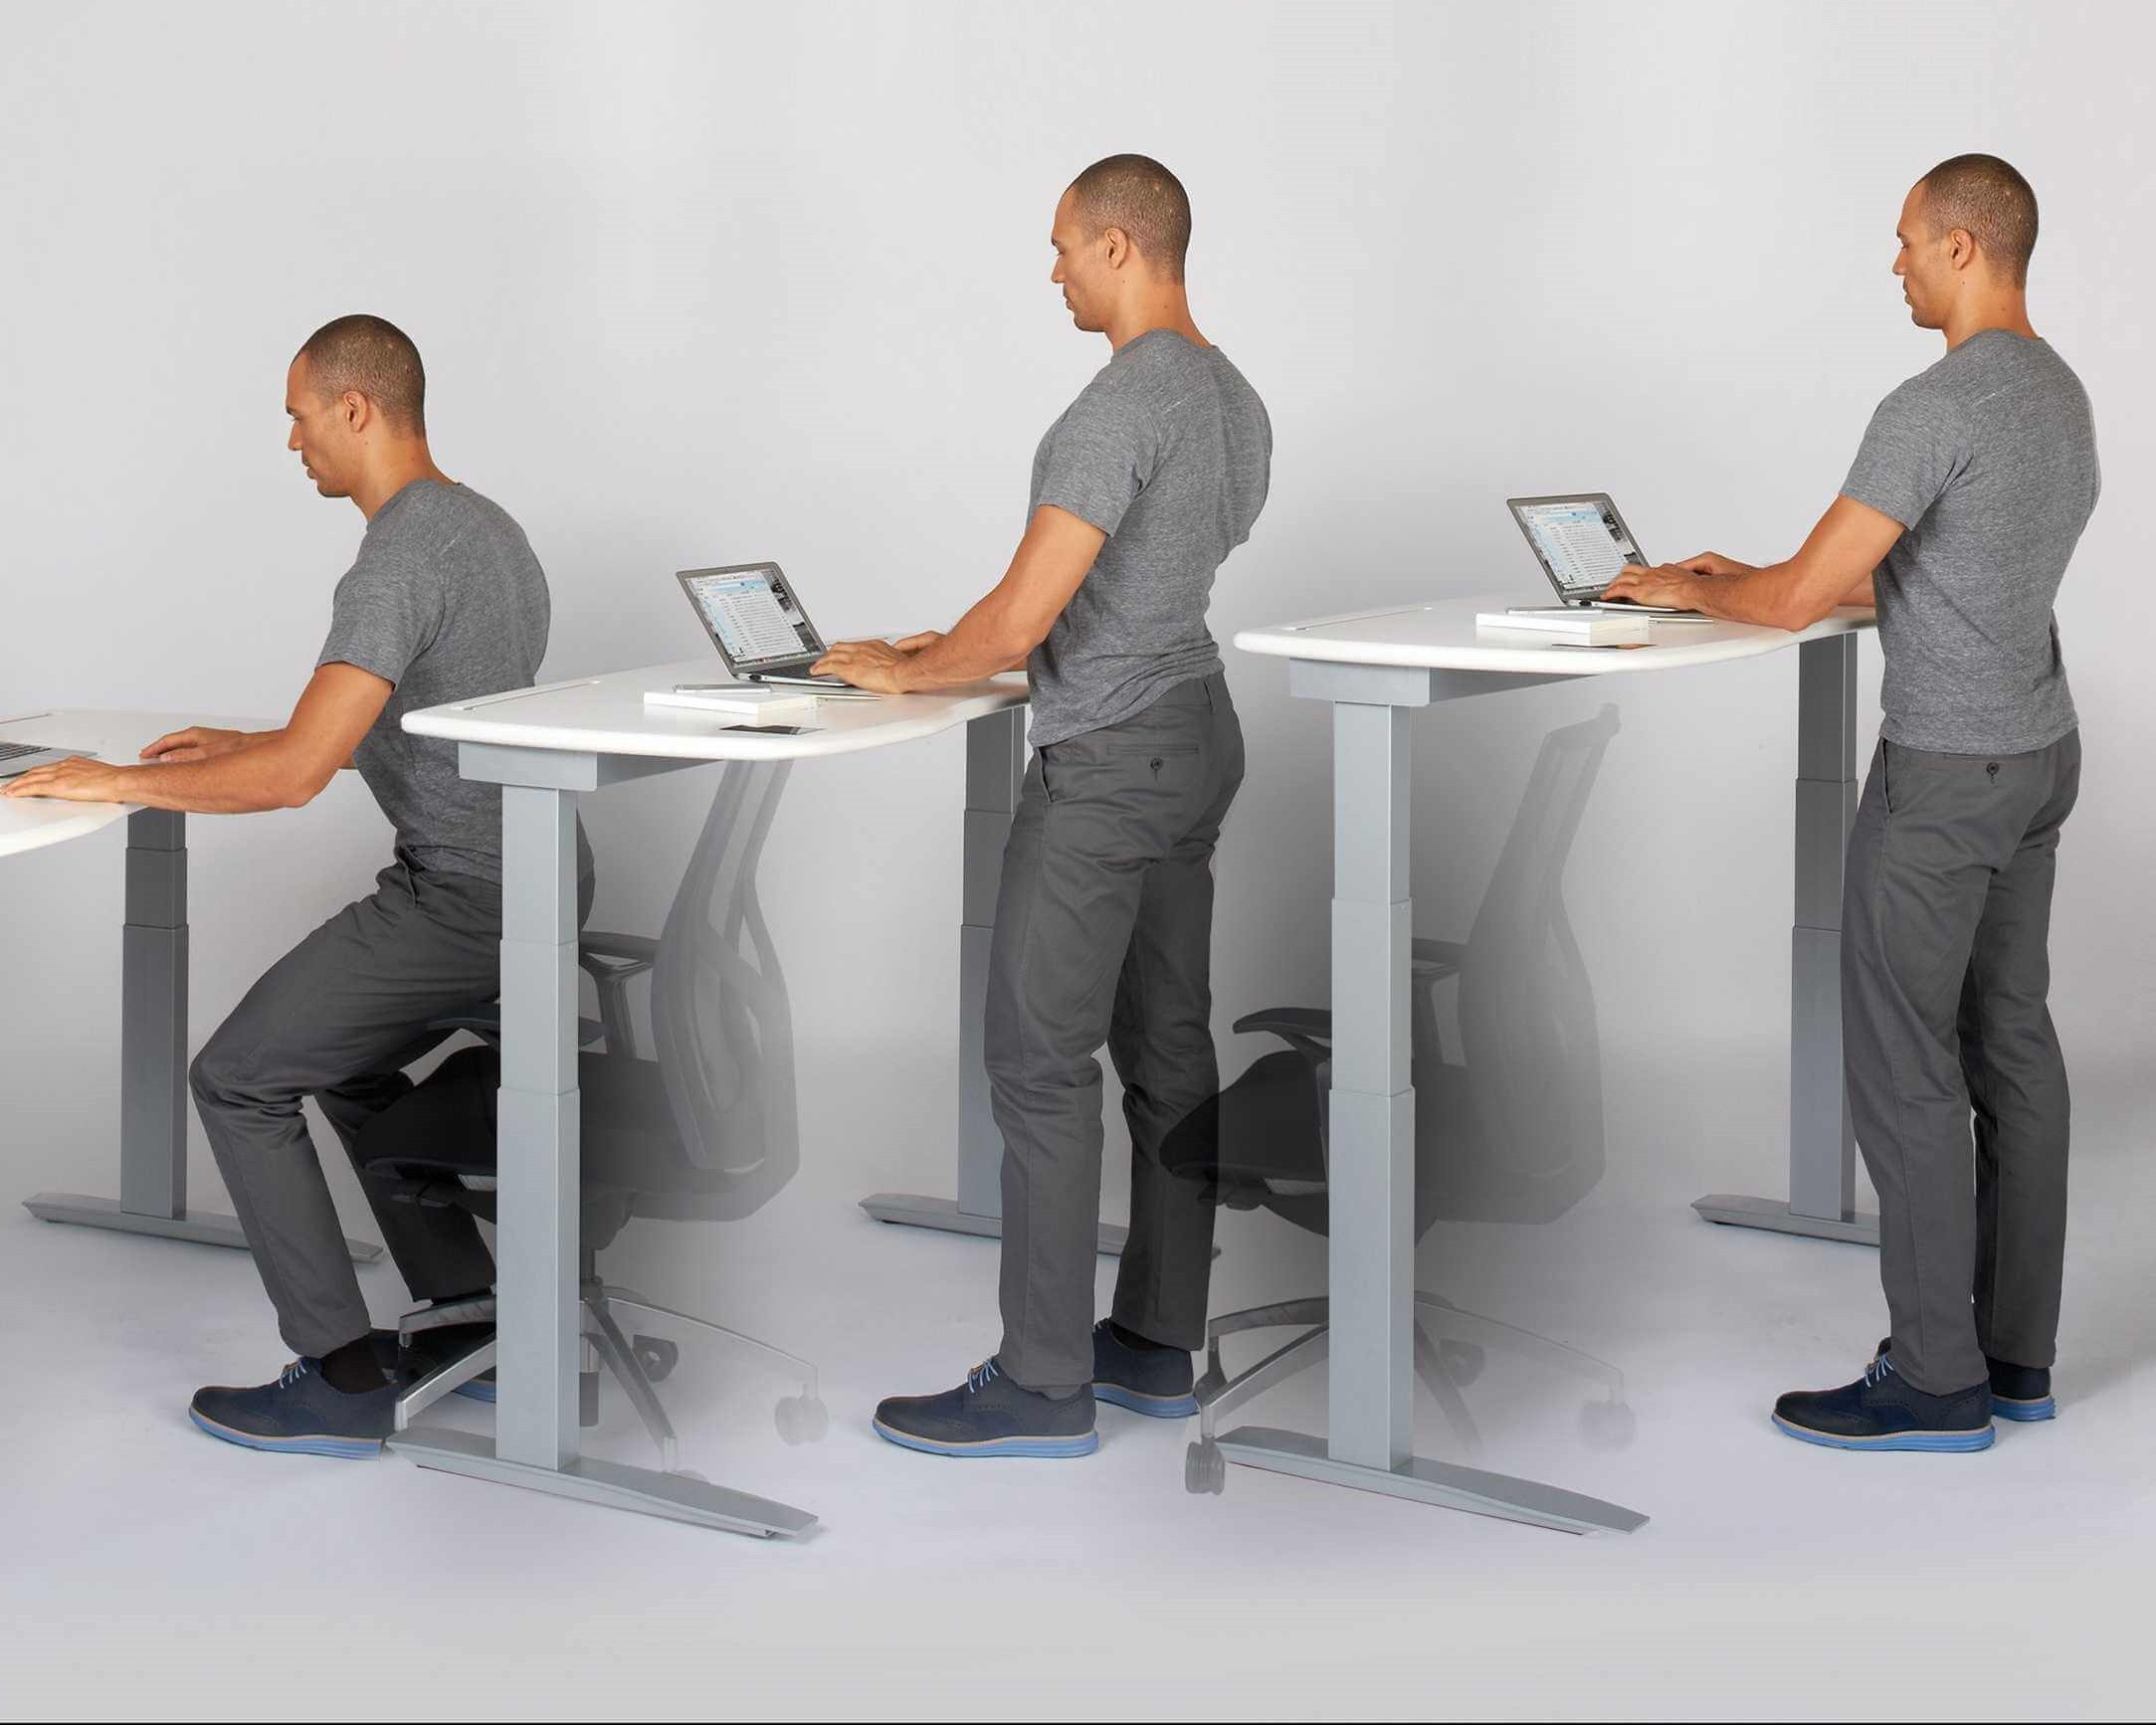 STANDING IS THE NEW SITTING AT THE APPLE PARK